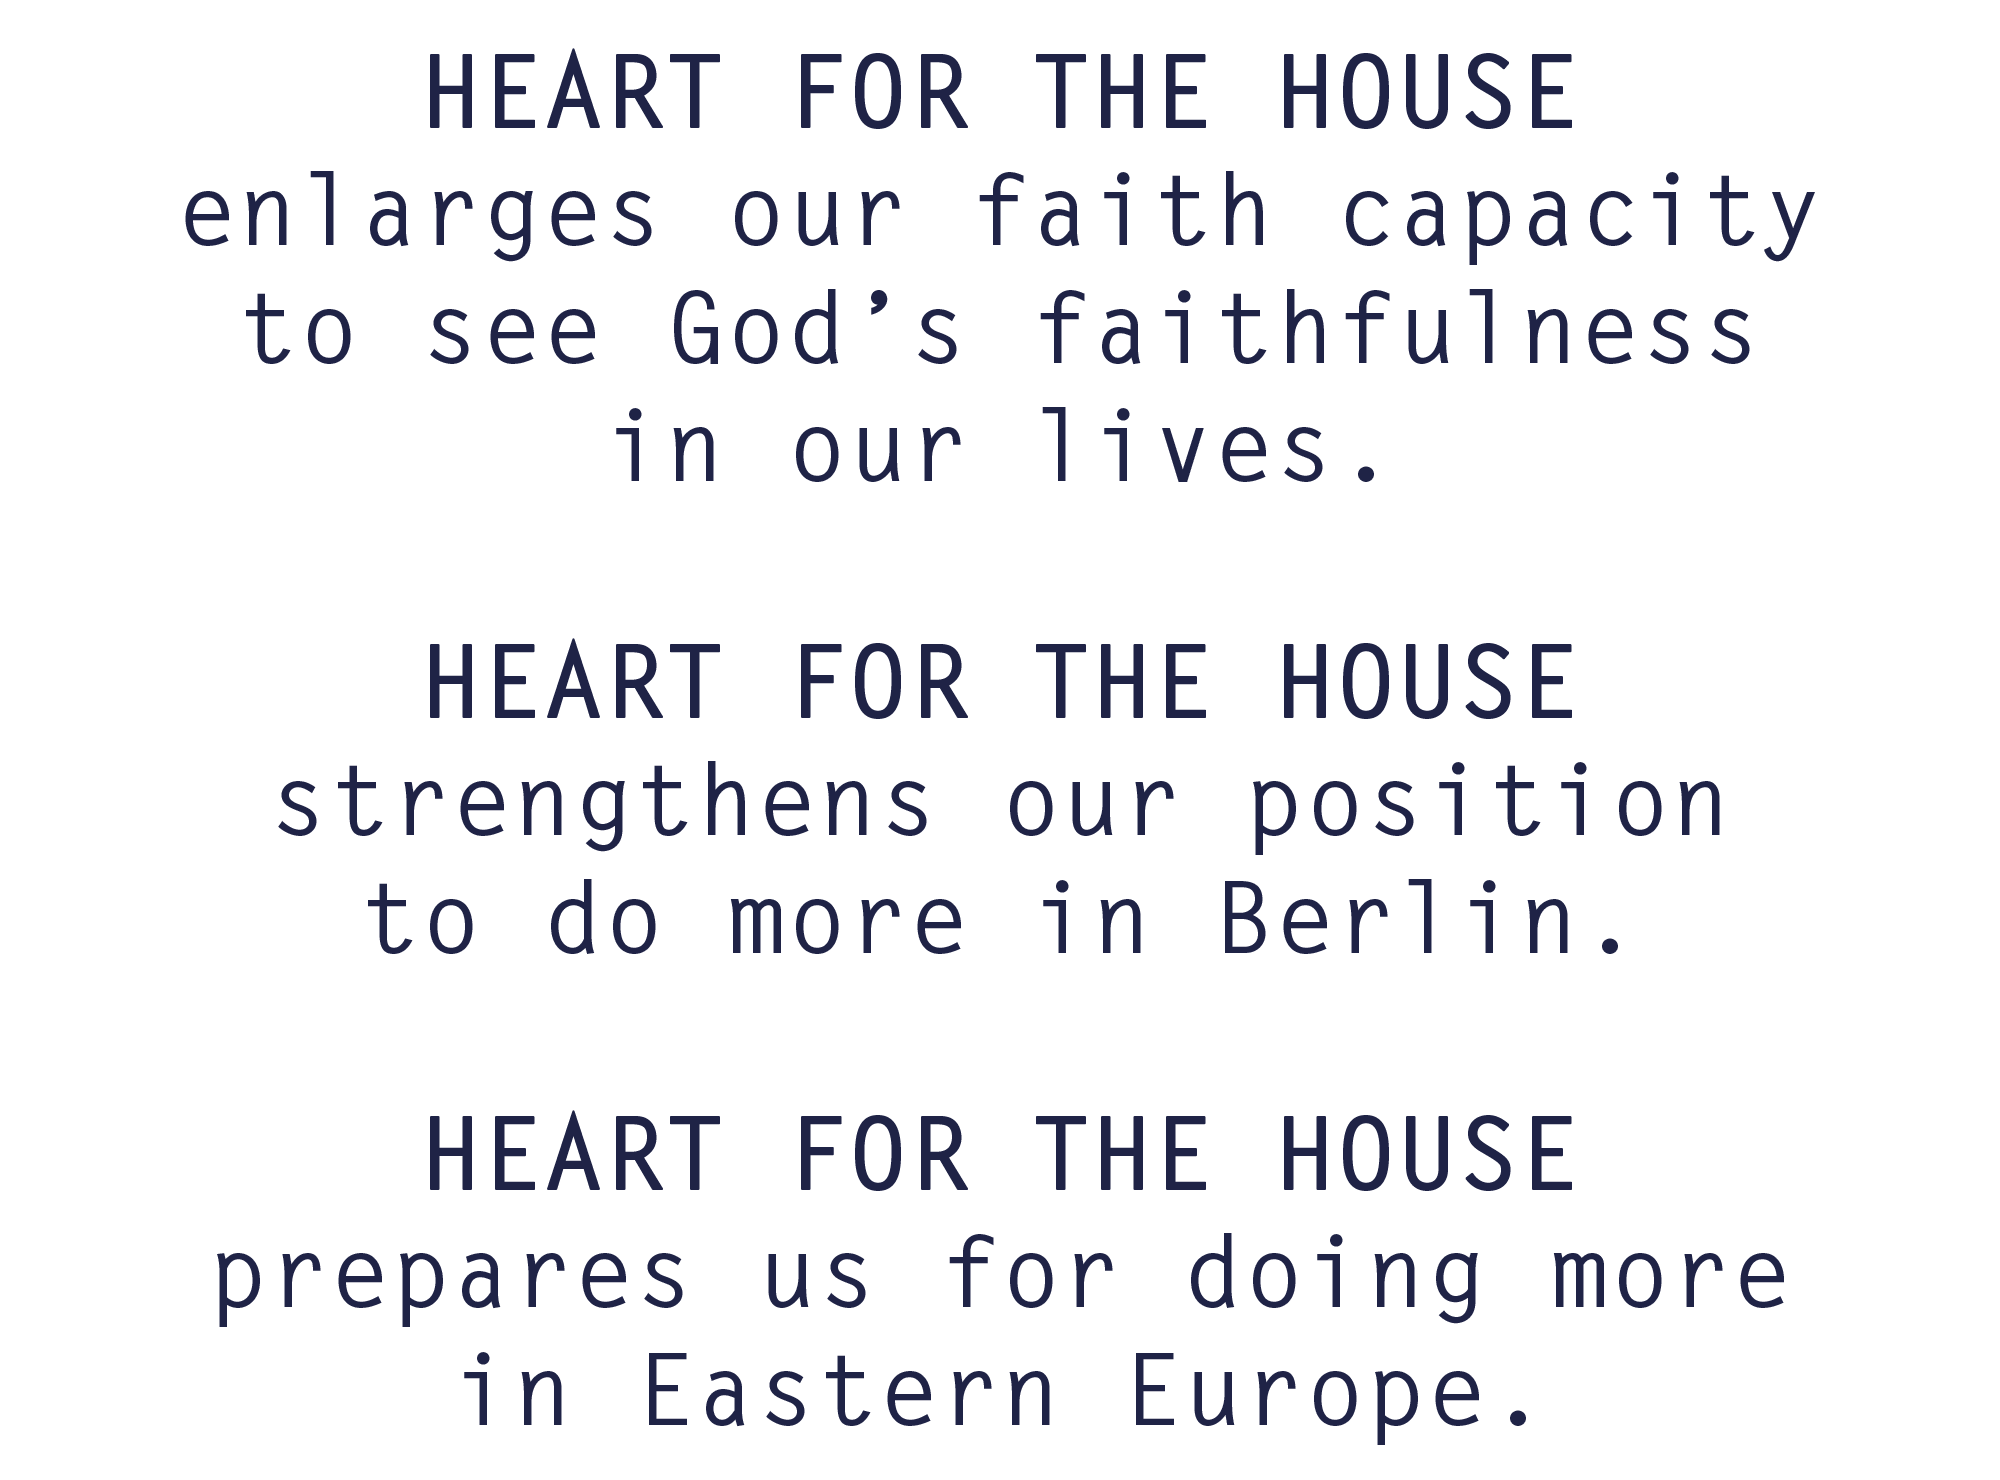 HEART FOR THE HOUSE enlarges our faith capacity to see God's faithfulness in our lives. HEART FOR THE HOUSE strengthens our position to do more in Berlin. HEART FOR THE HOUSE prepares us for doing more in Eastern Europe.